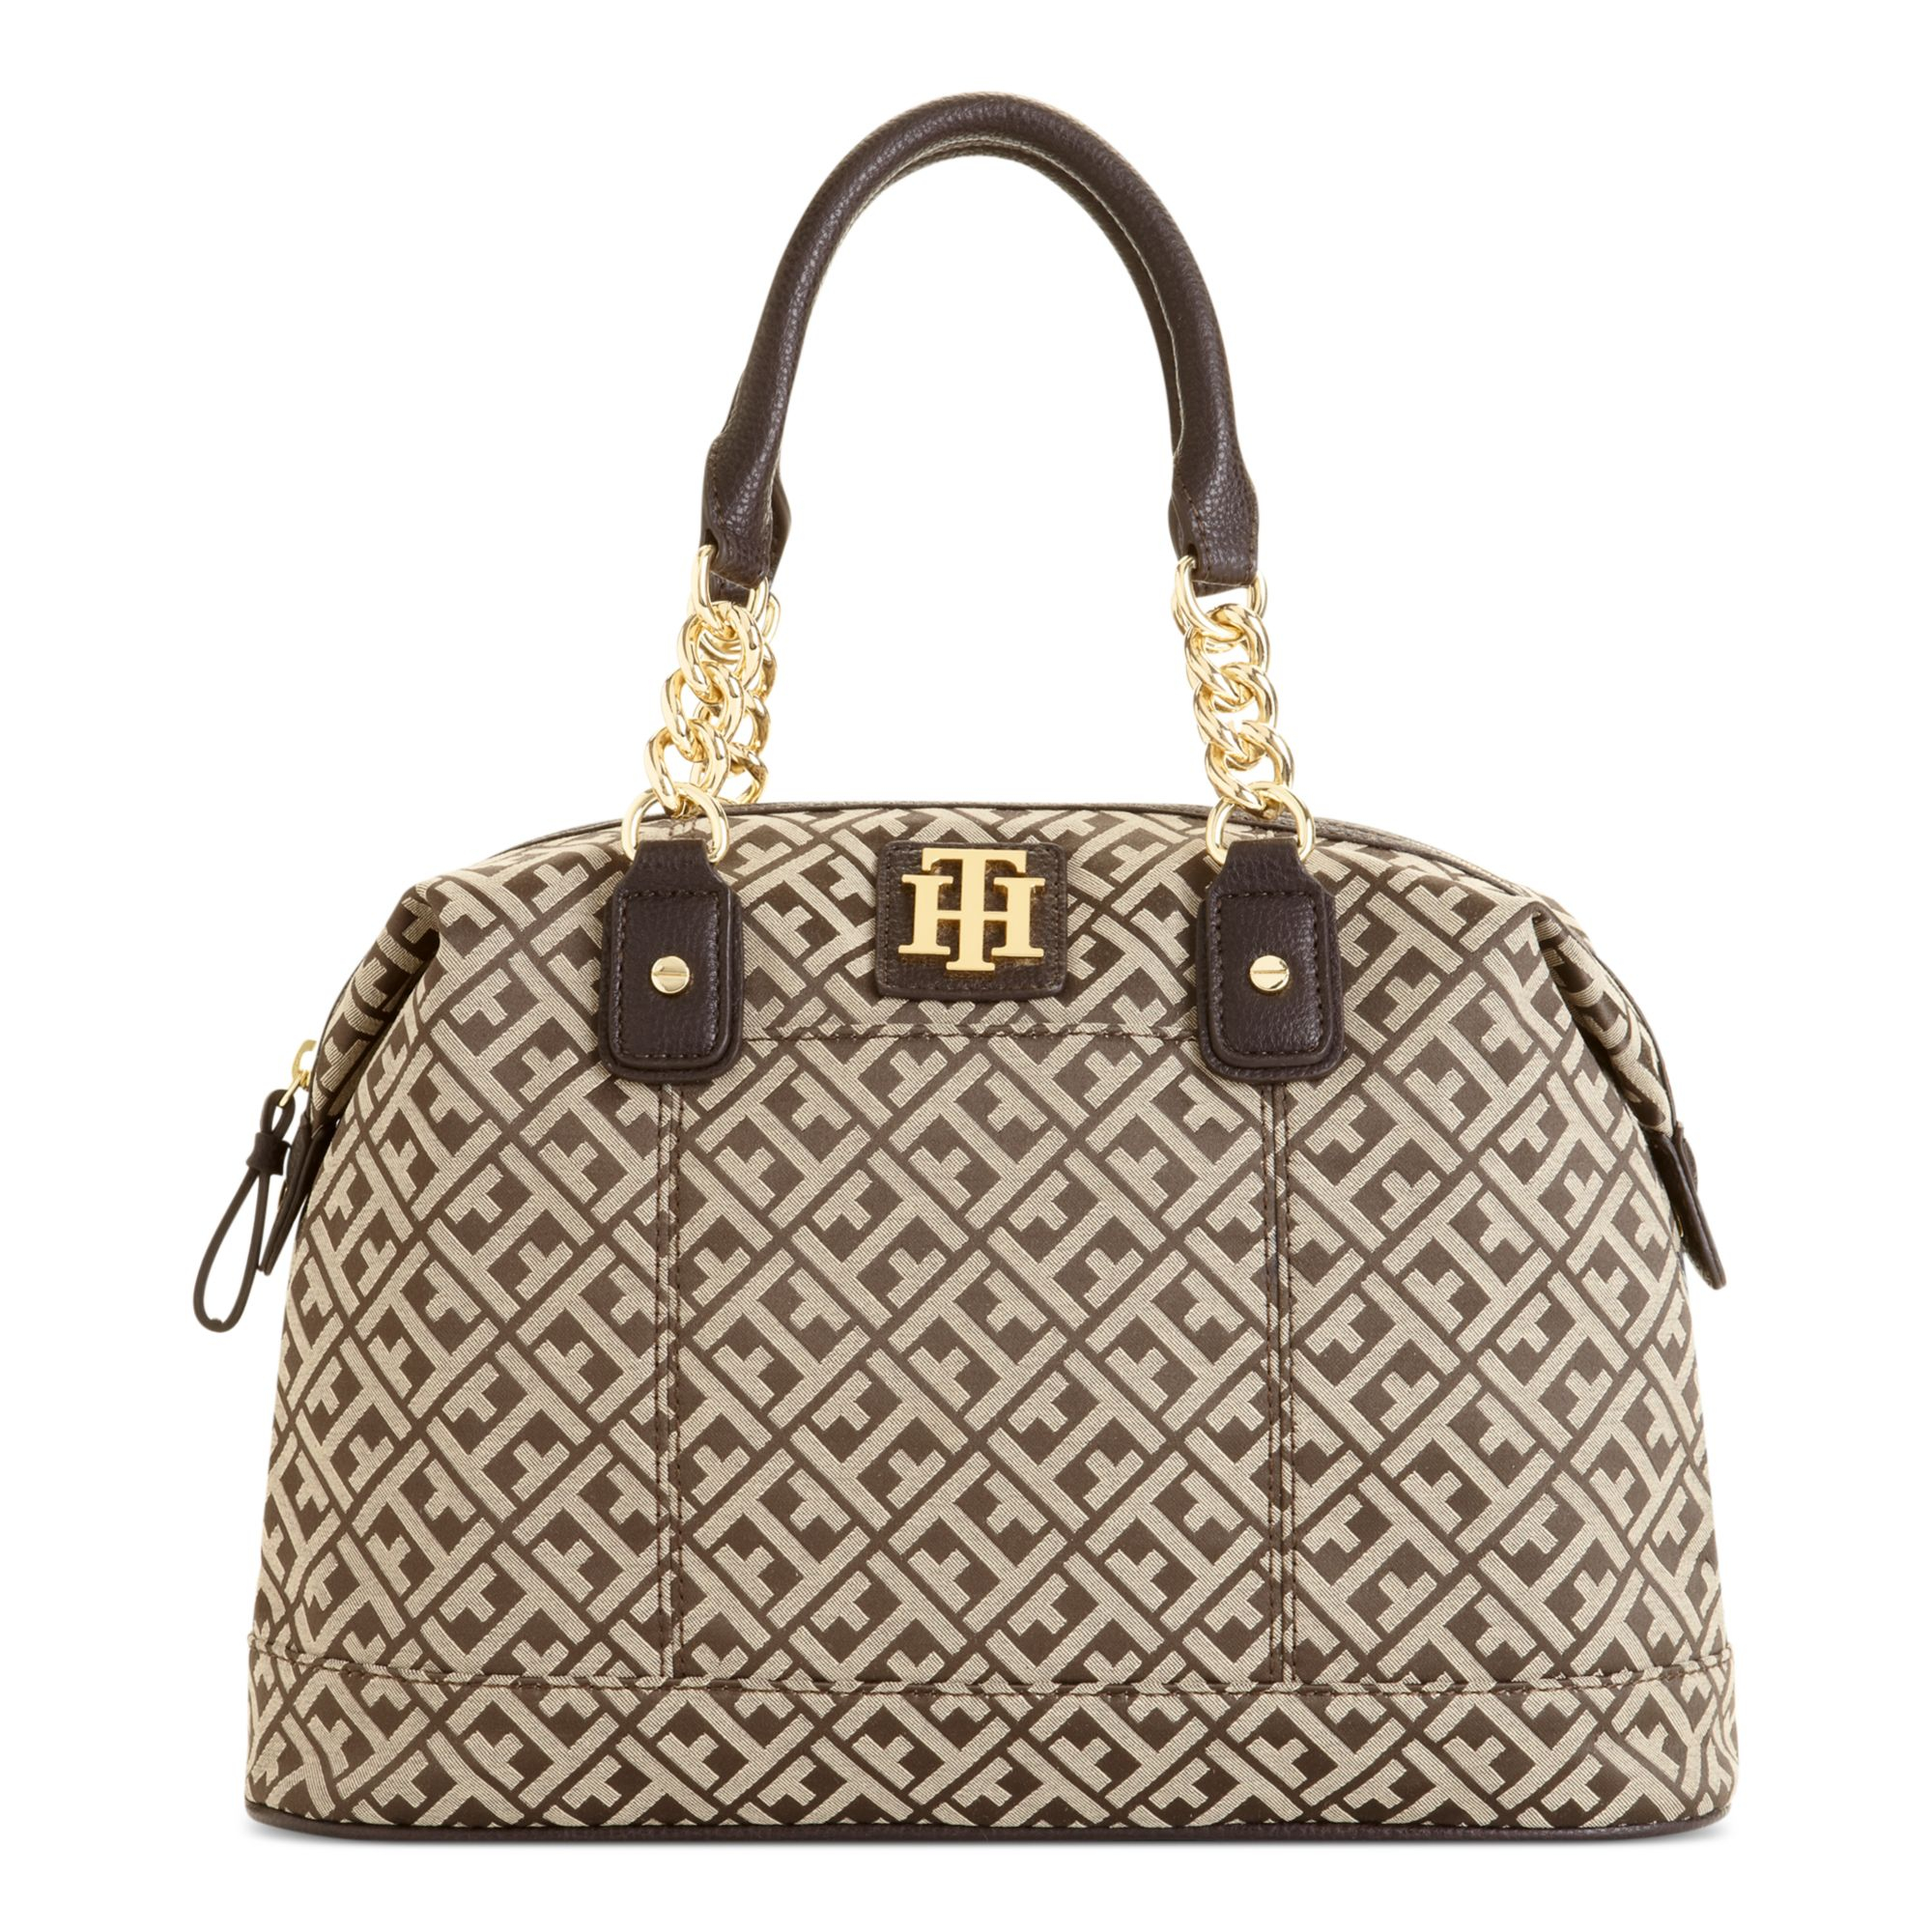 5949f3b56a1 Tommy Hilfiger Bombay Jaquard Bowler Bag in Brown - Lyst